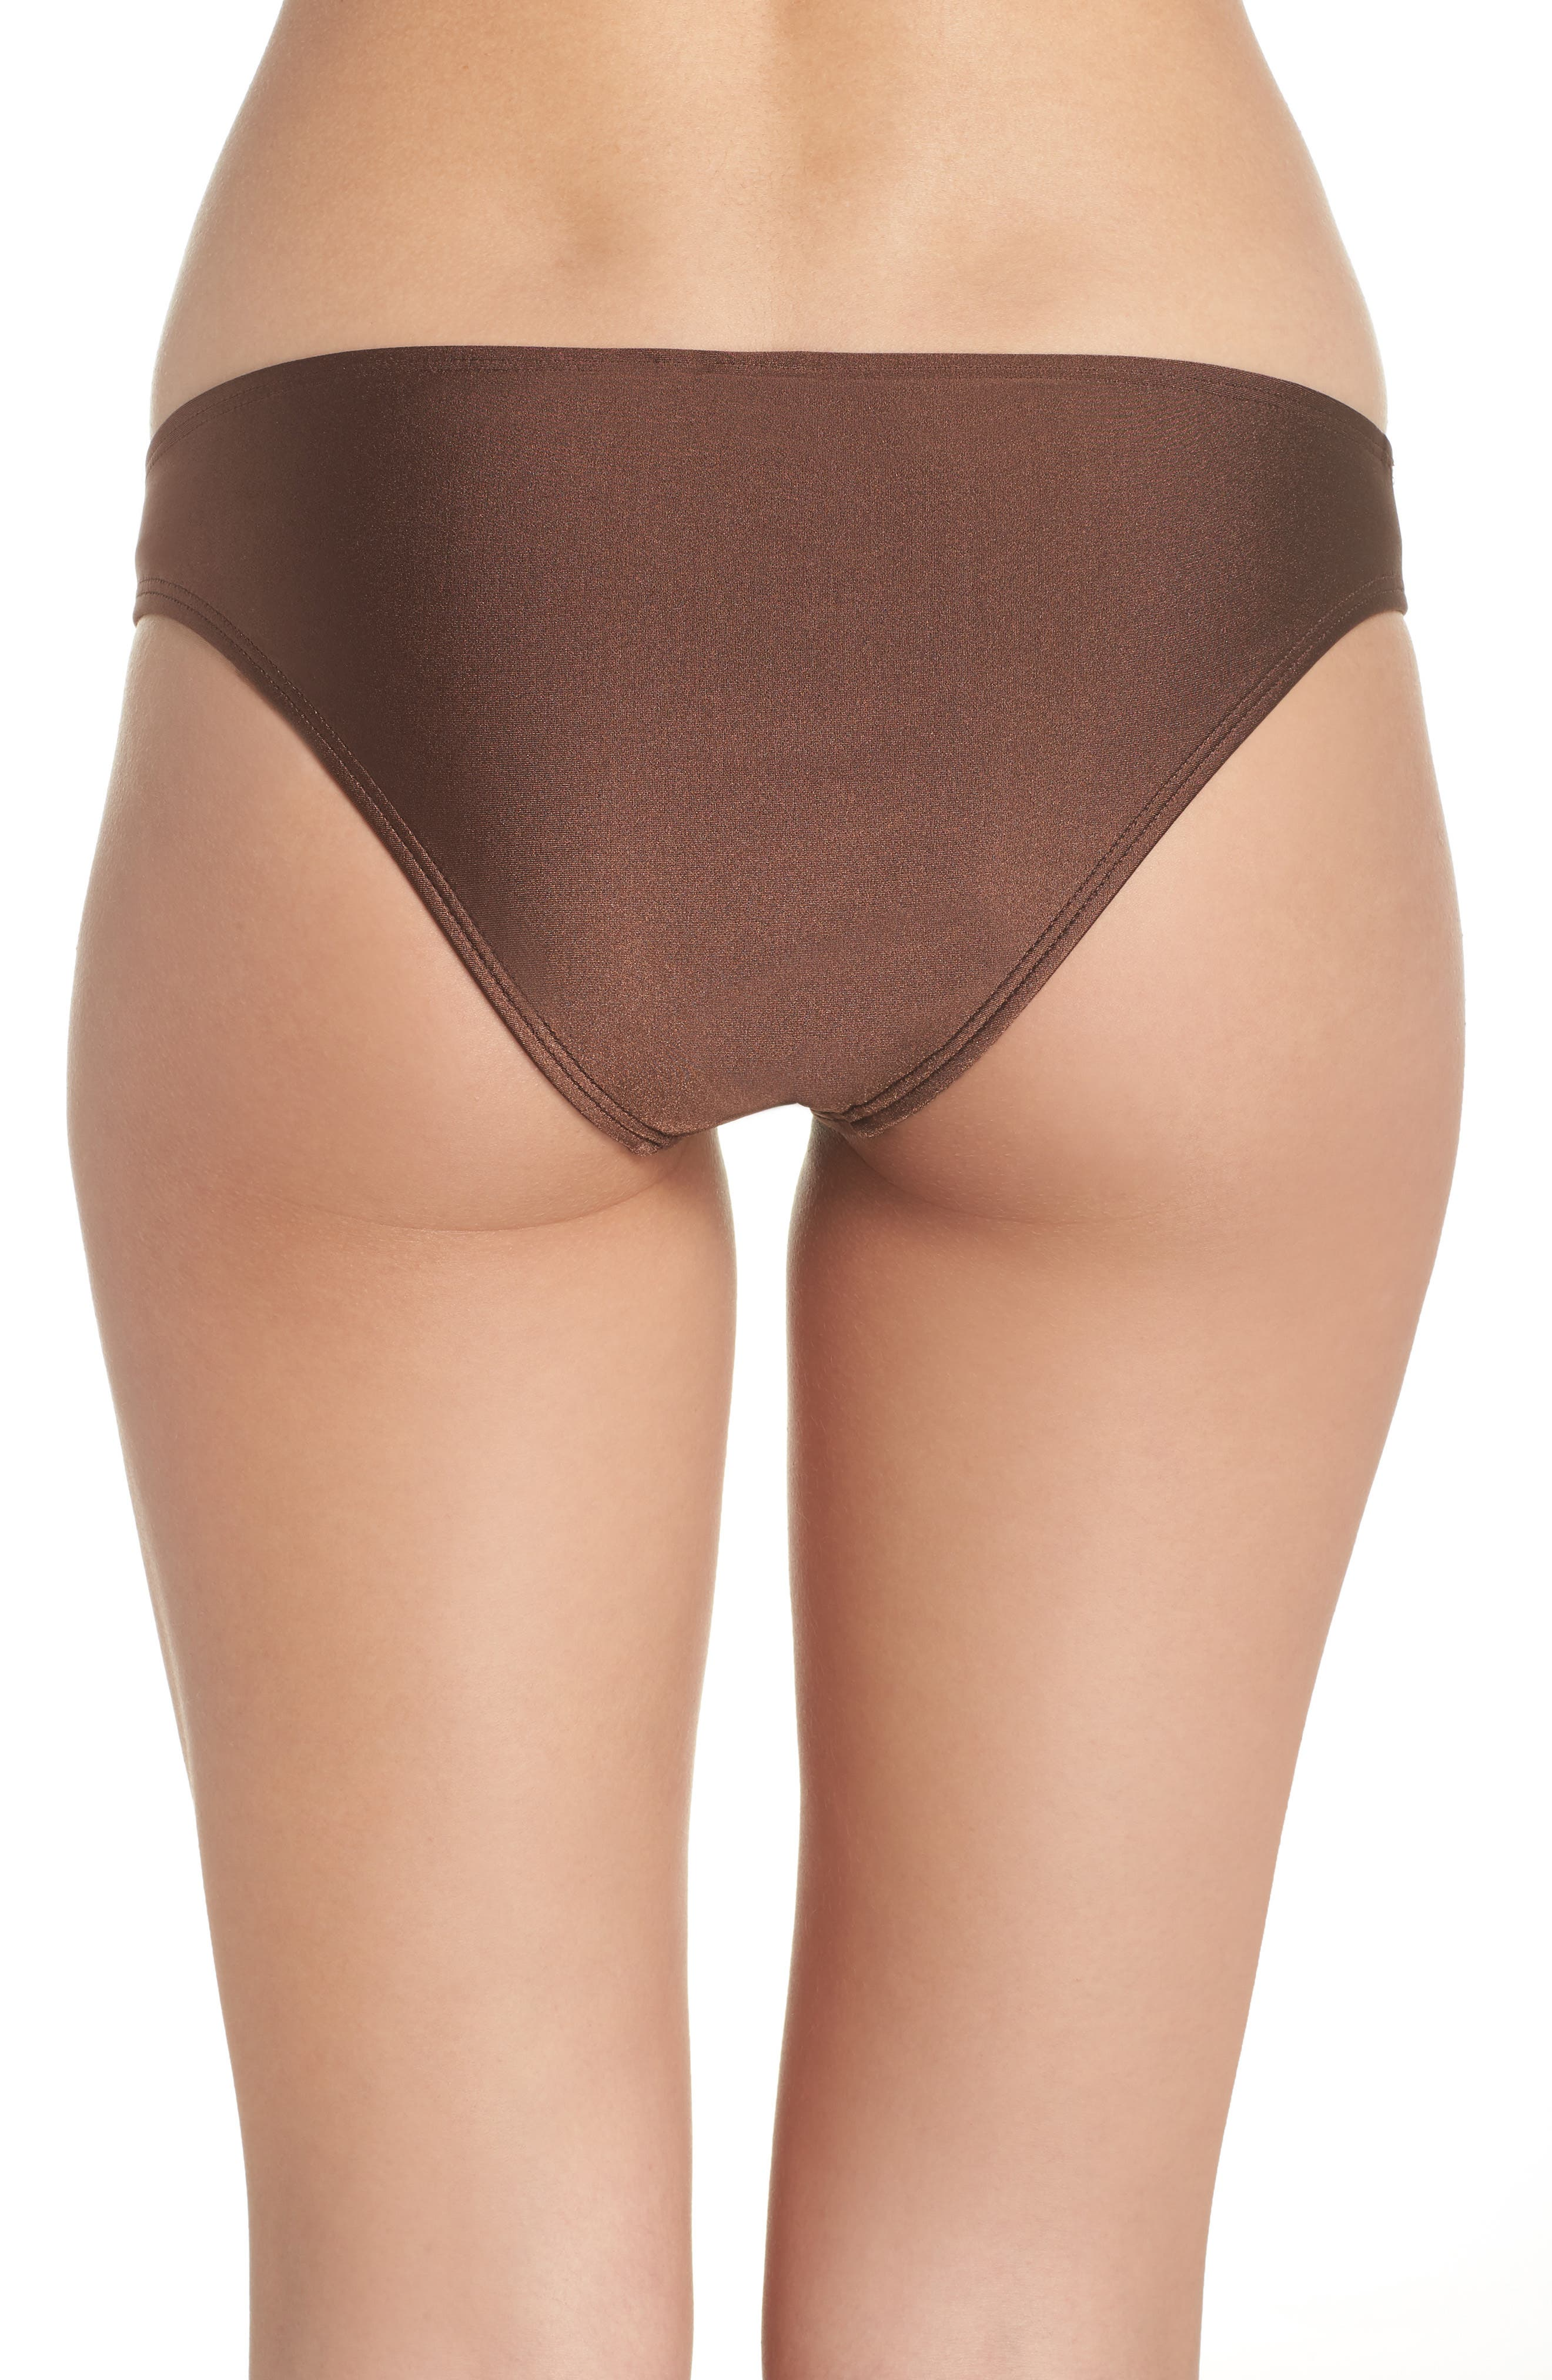 Banded Hipster Bikini Bottoms,                             Alternate thumbnail 2, color,                             Chocolate Glint